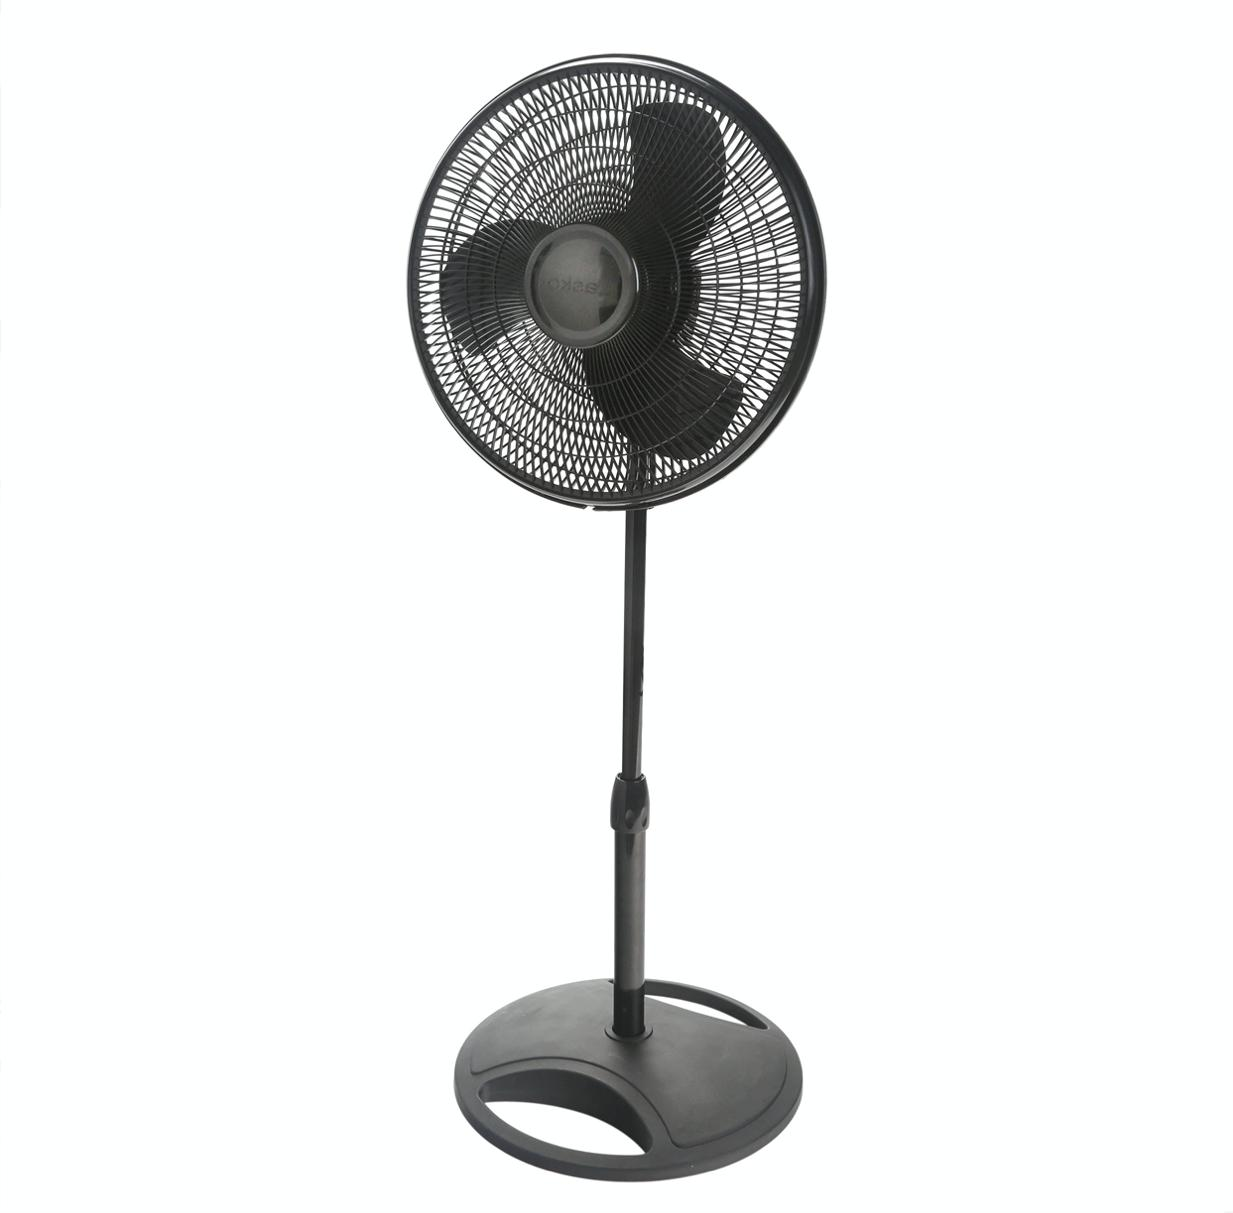 "New Lasko 16"" Pedestal Model"